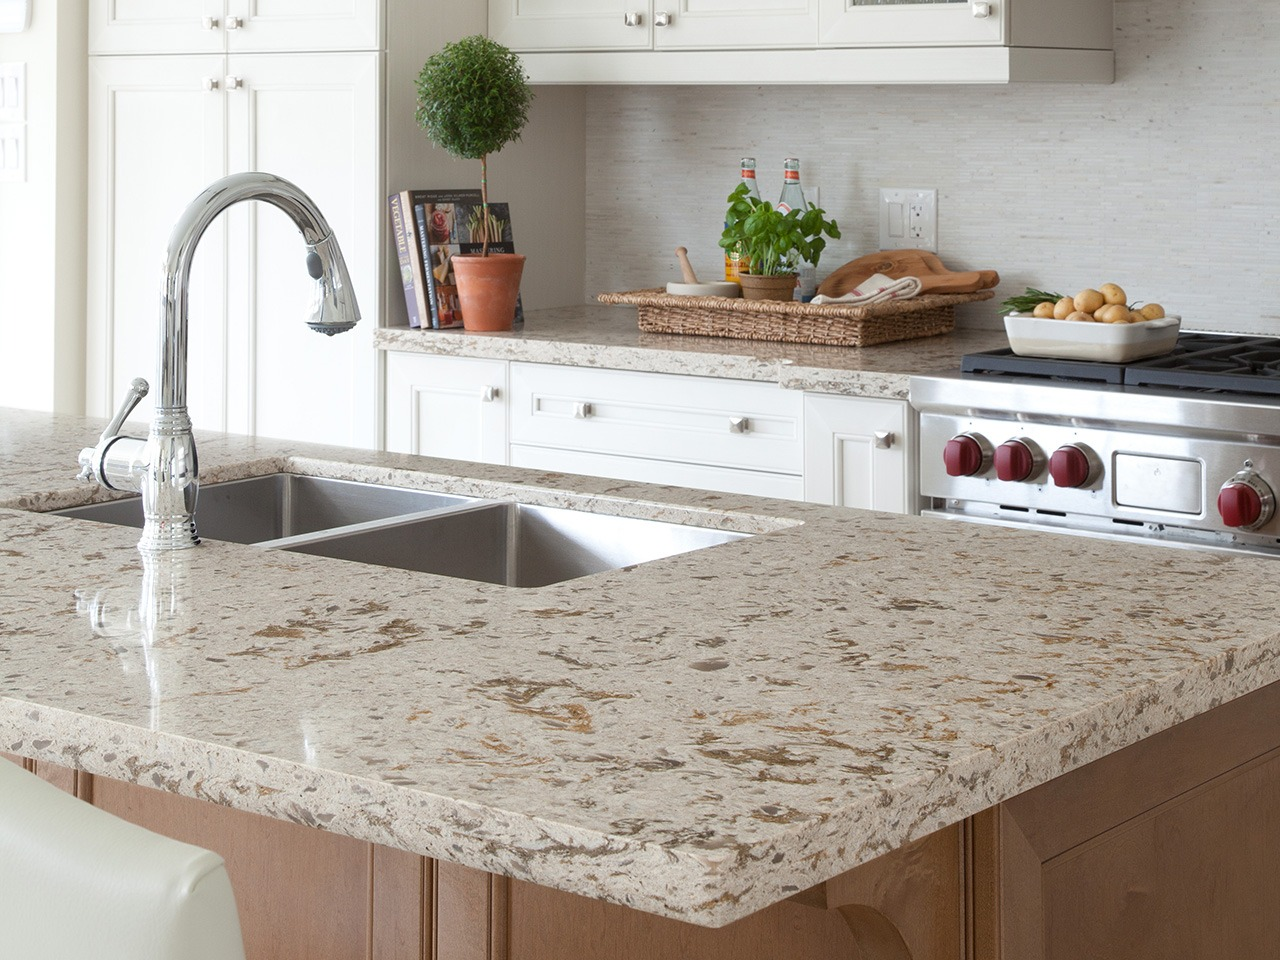 Kitchens - Remodel or Build your New Kitchen Today